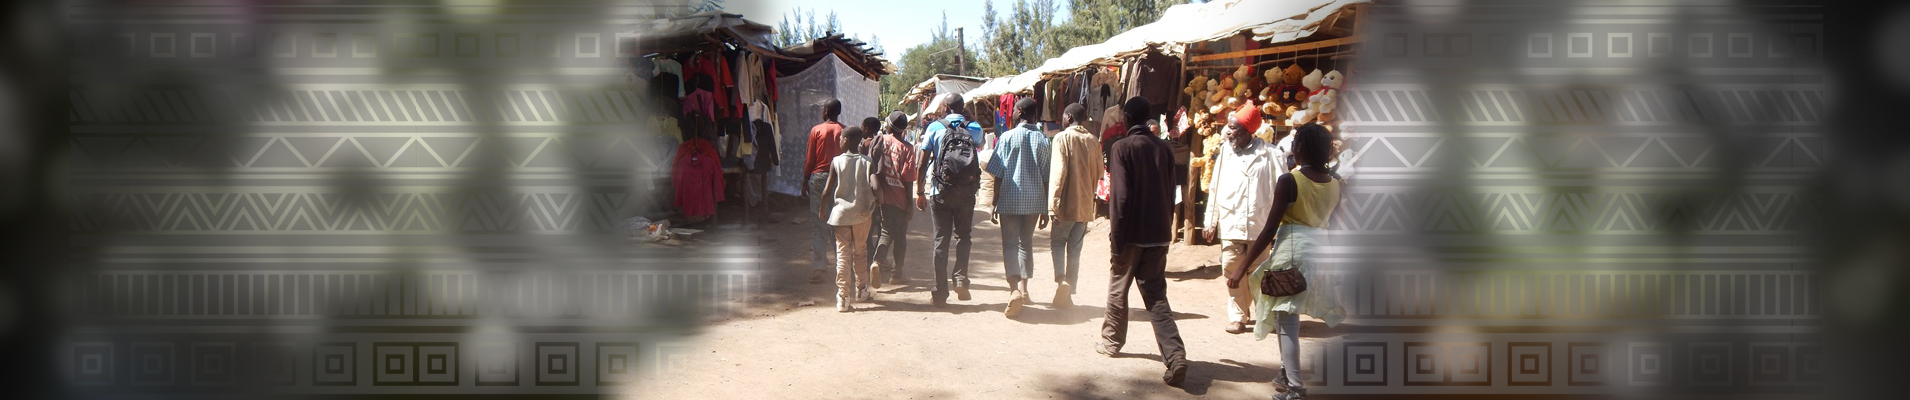 TAT helping homeless children in Nakuru